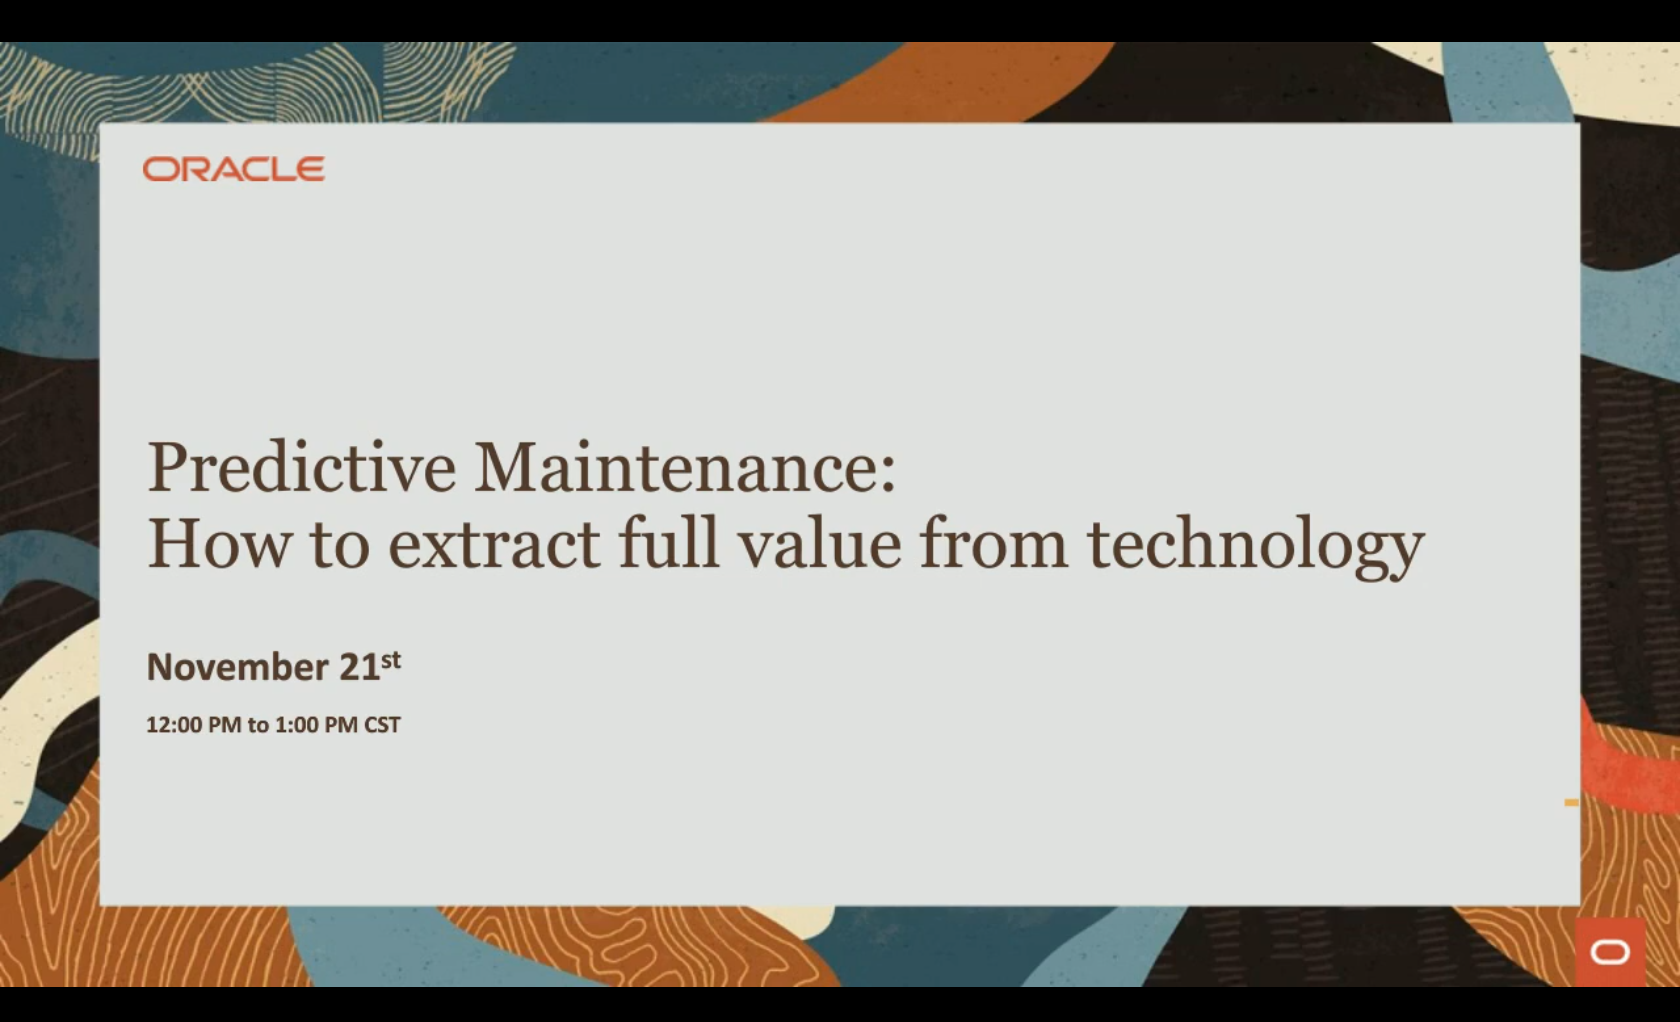 Predictive Maintenance: How to Extract Full Value from Technology